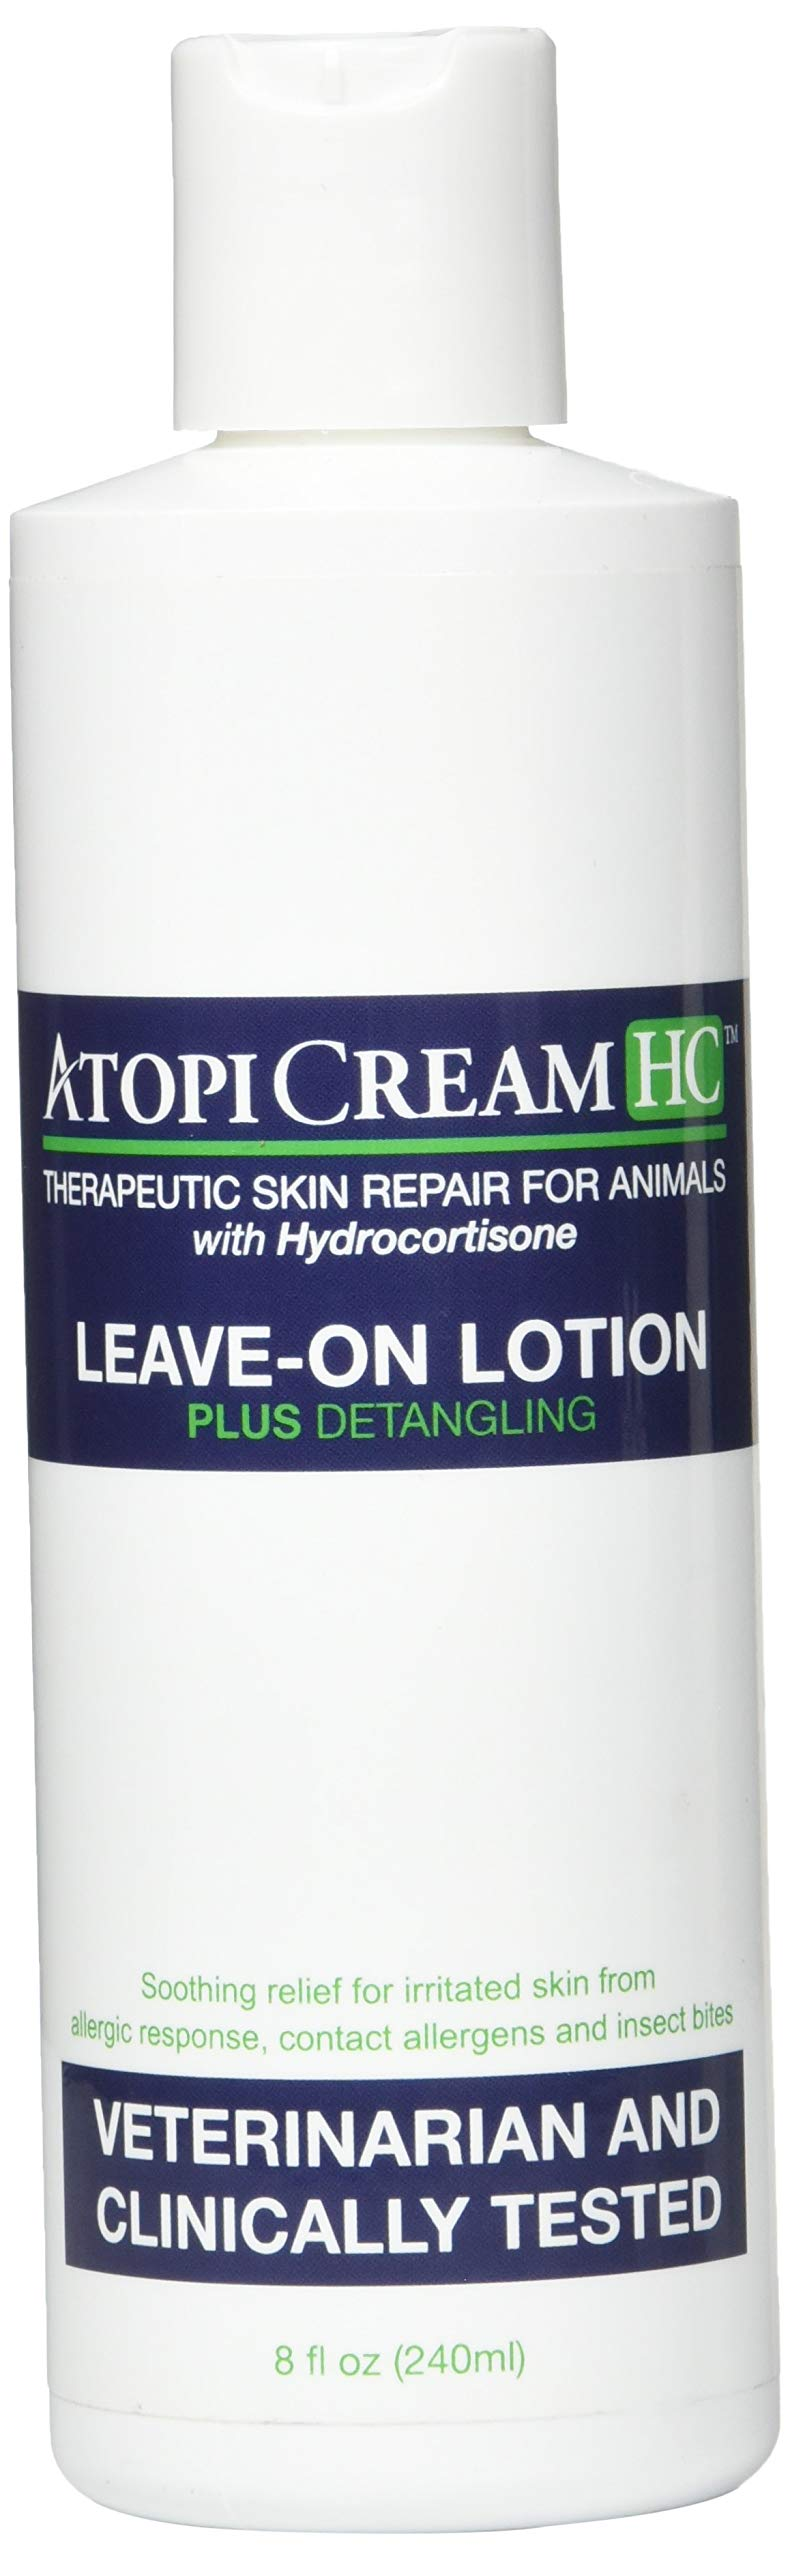 VetriMAX AtopiCream HC 1% Hydrocortisone Leave-on Lotion for Animals by VetriMAX